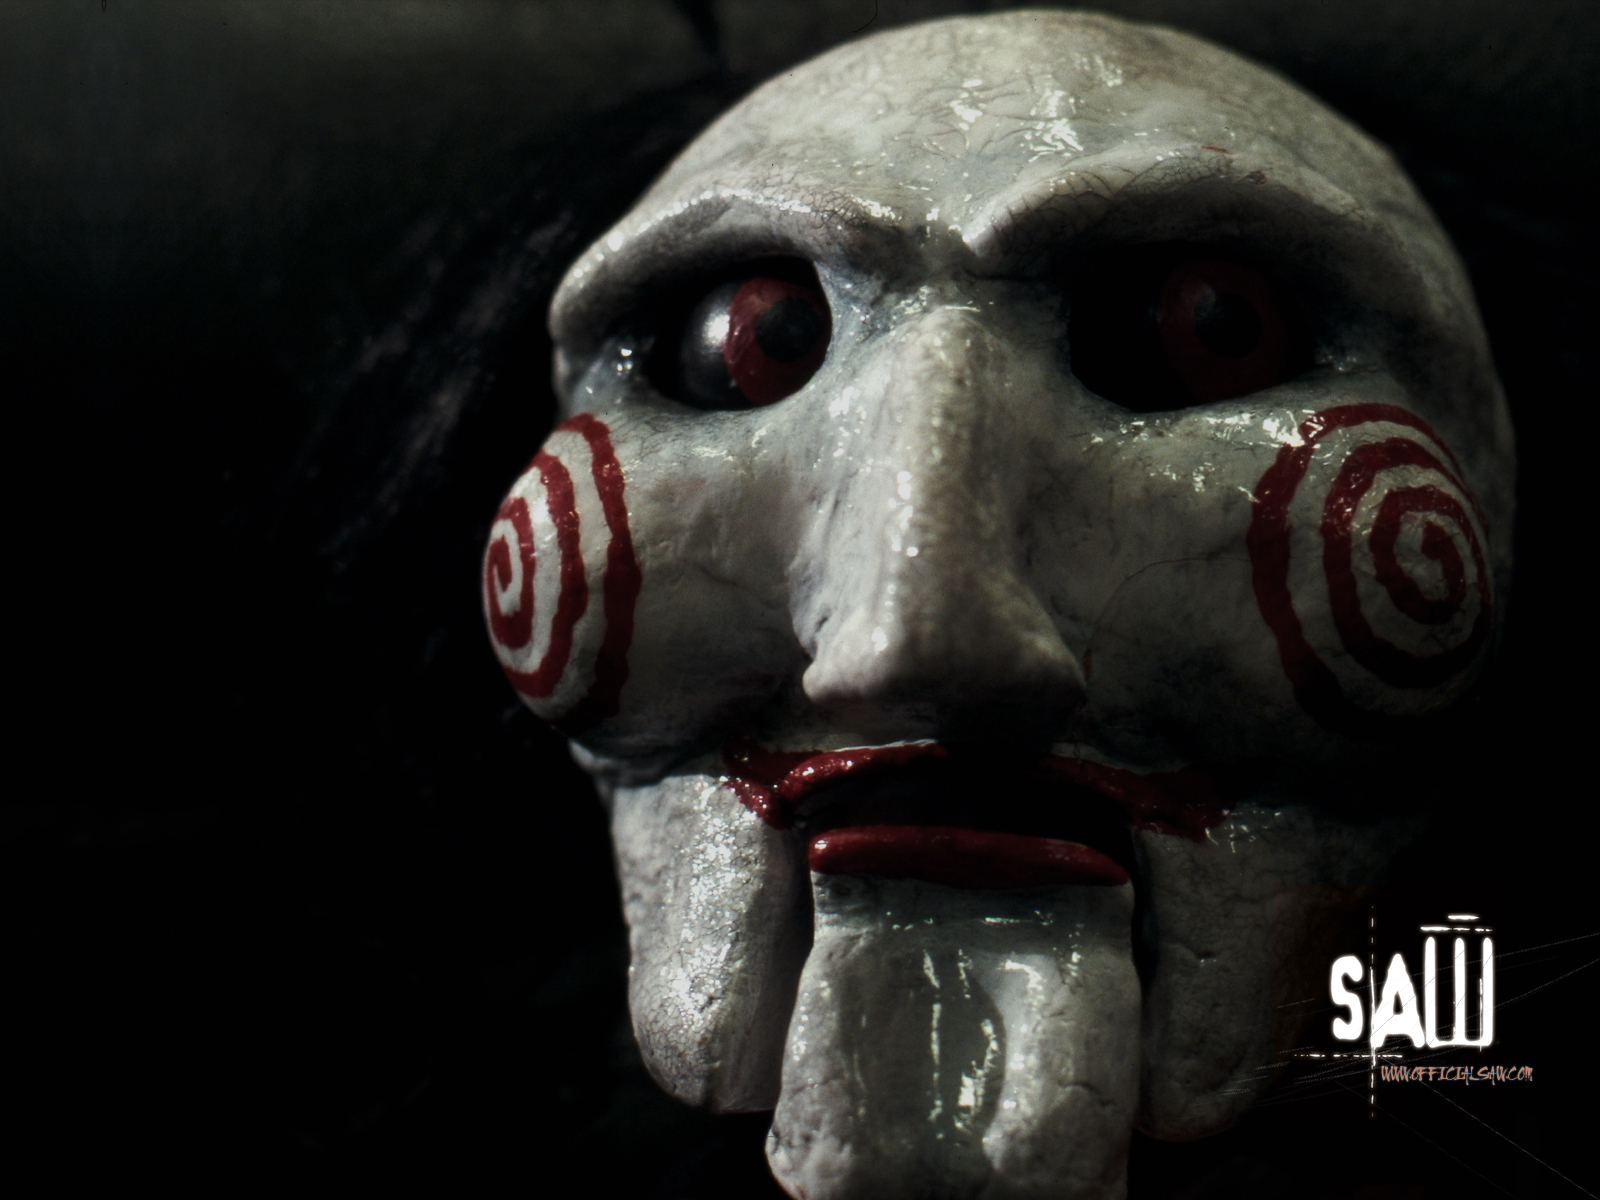 Saw-I-want-to-play-a-game-horror-movies-30797308-1600-1200